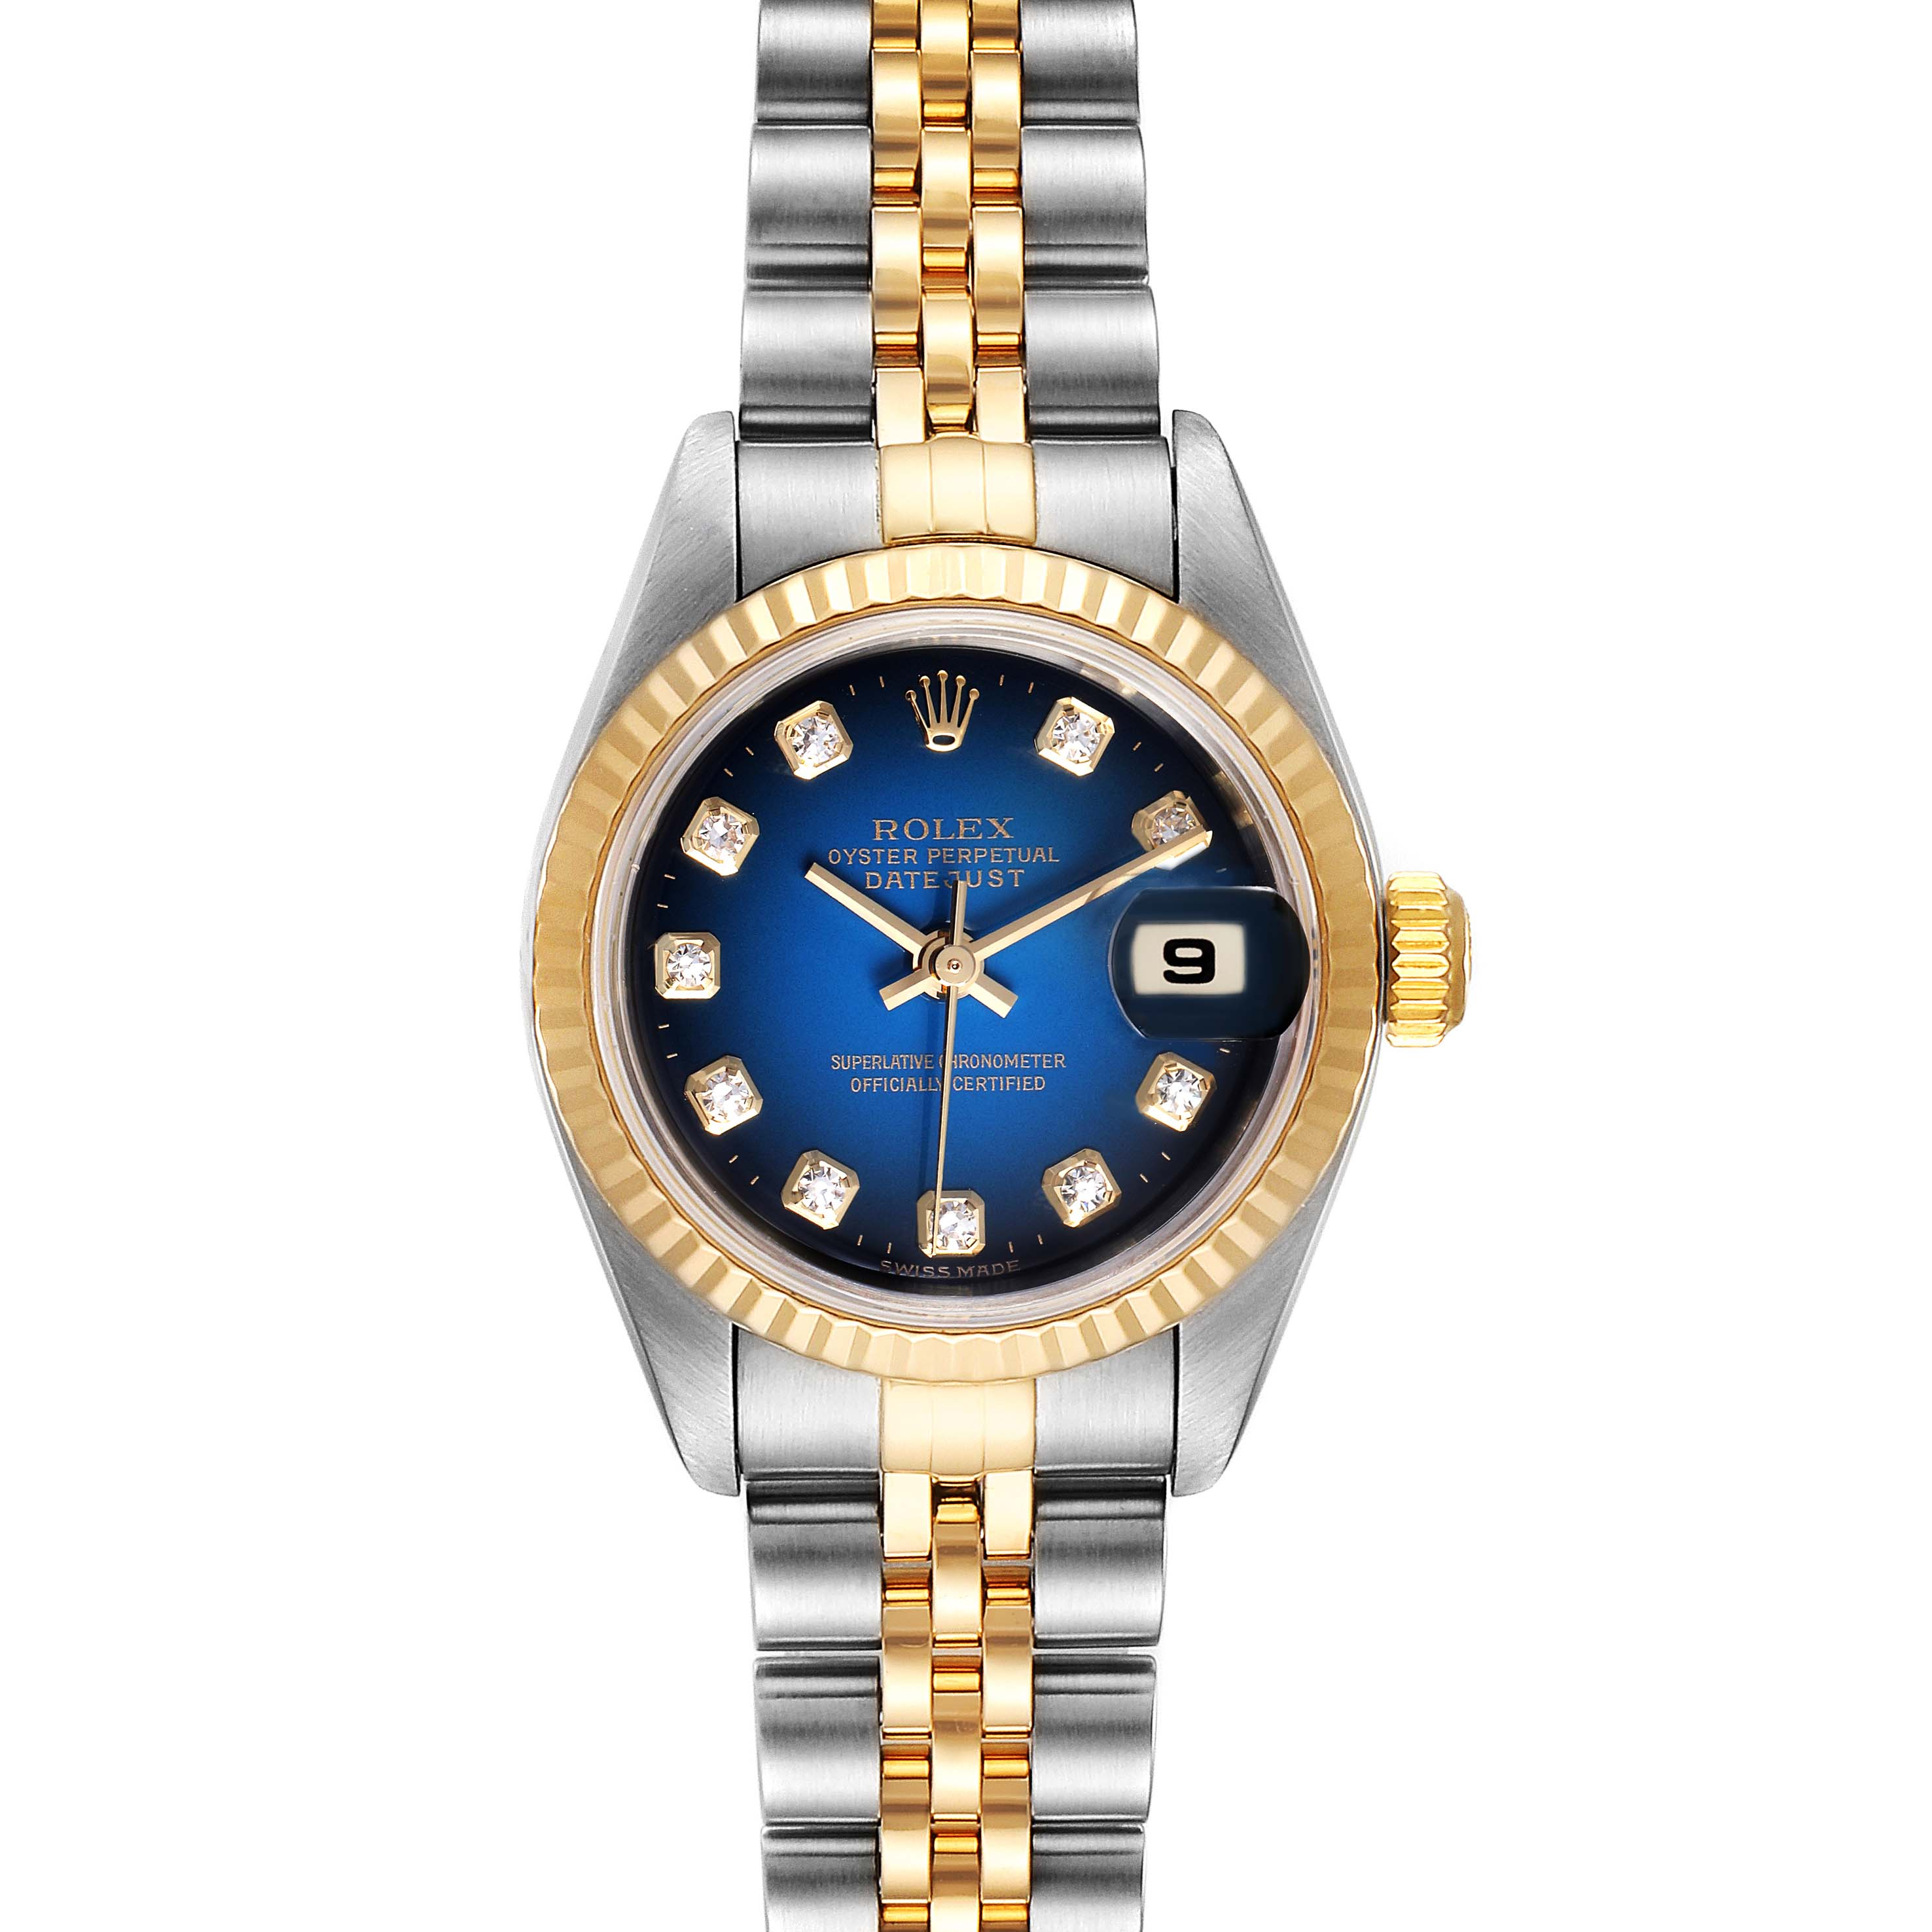 Photo of Rolex Datejust Steel Yellow Gold Vignette Diamond Ladies Watch 79173 Box Papers